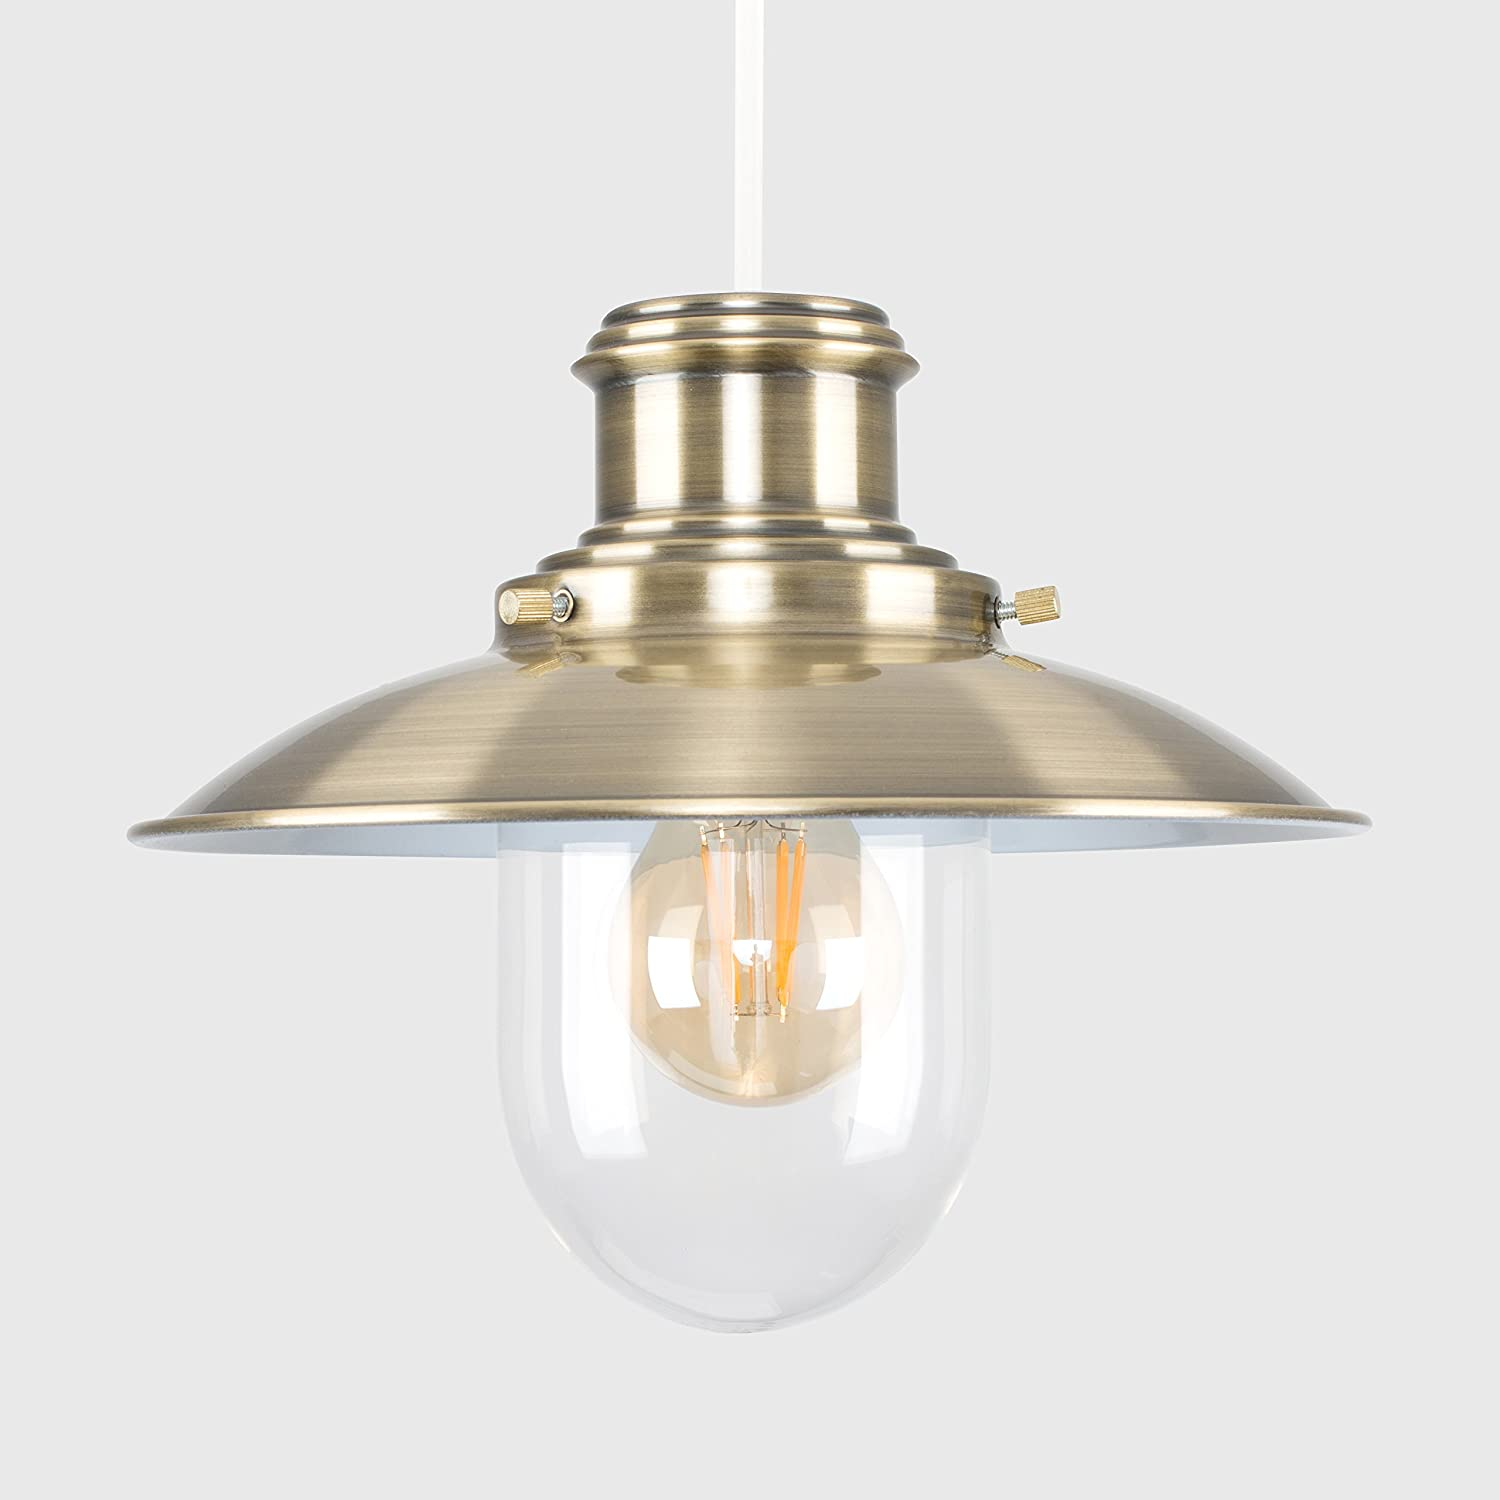 Minisun Modern Antique Brassed Effect Metal And Glass Fishermans Brushed Satin Chrome Light Pull Cord Switch Amazoncouk Lighting Vintage Style Steampunk Lantern Easy Fit Ceiling Lamp Pendant